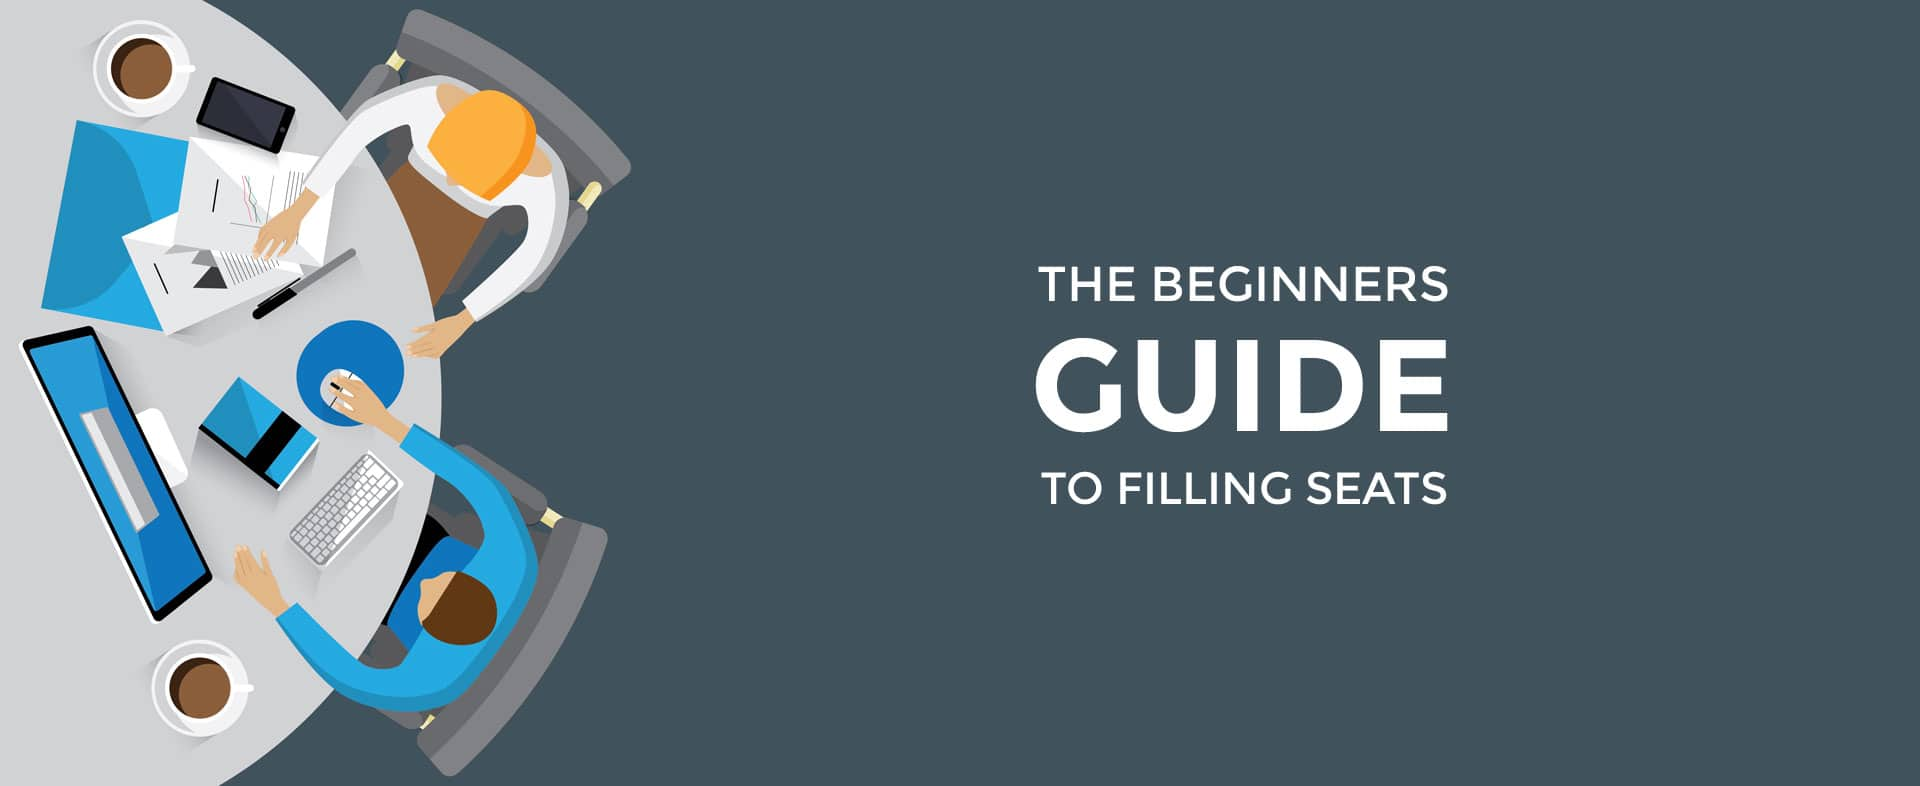 Beginners guide to filling seats.